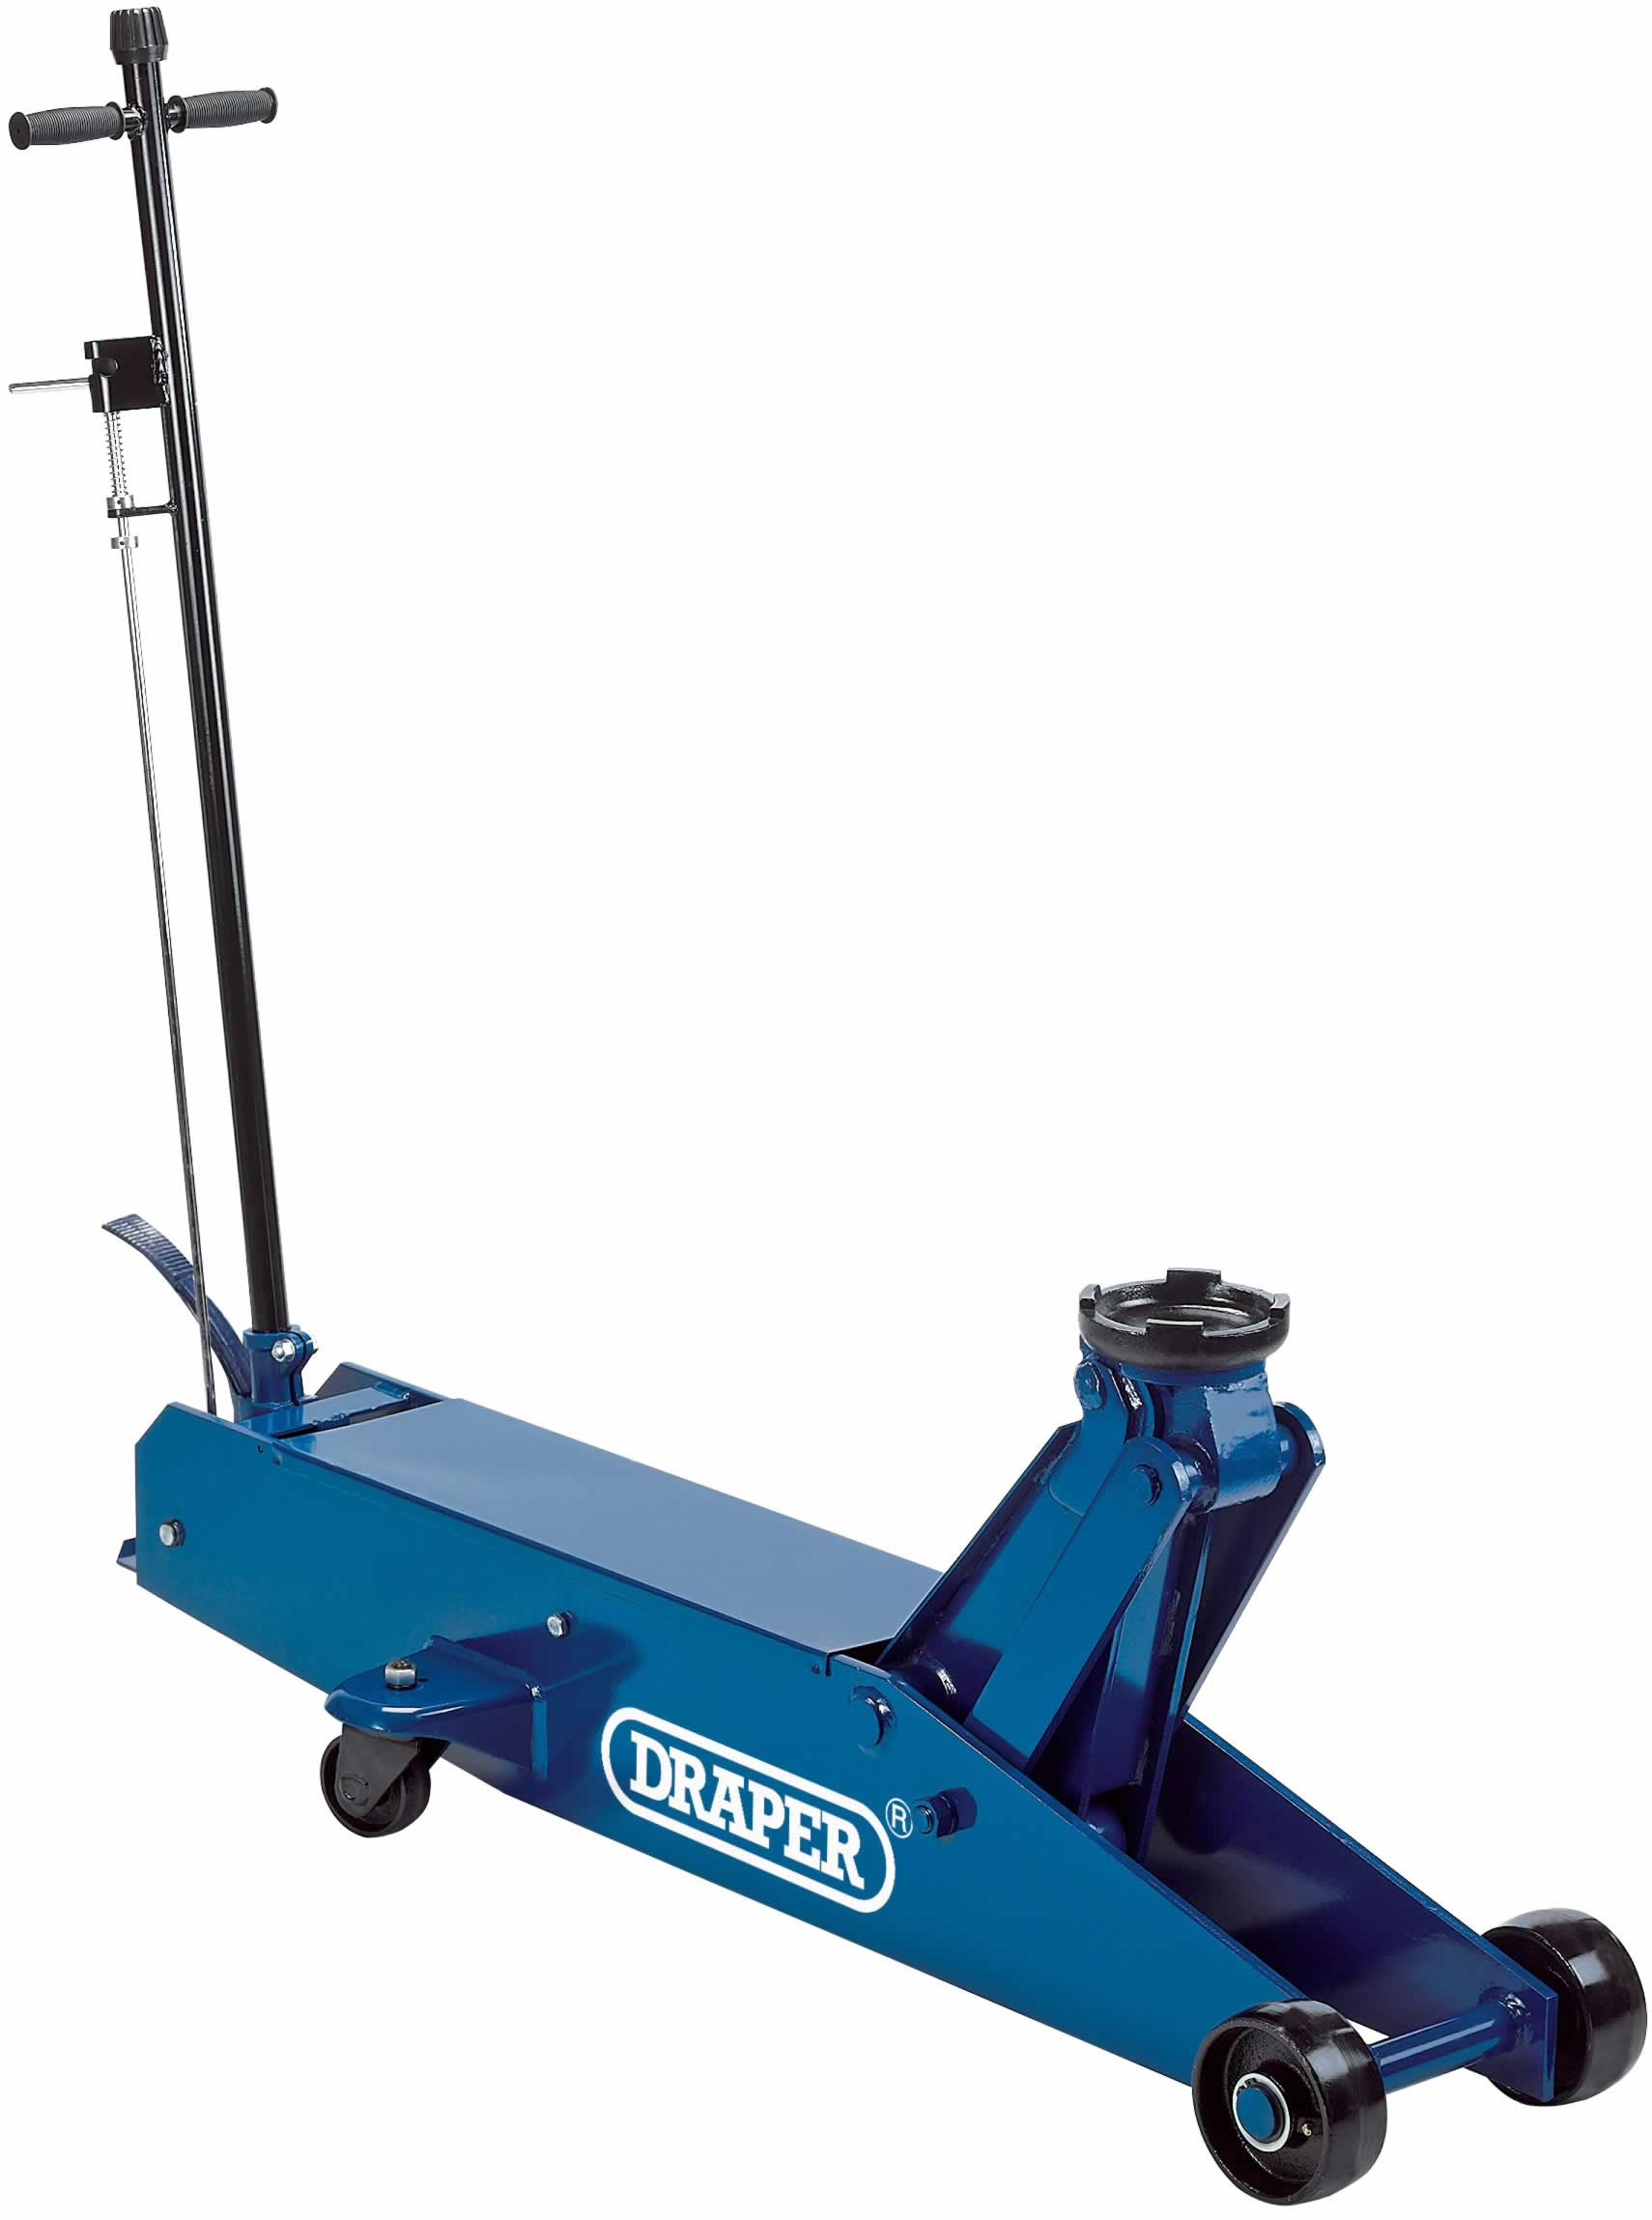 10 TONNE LONG CHASSIS HYDRAULIC TROLLEY JACK WITH 'QUICK LIFT' FACILITY